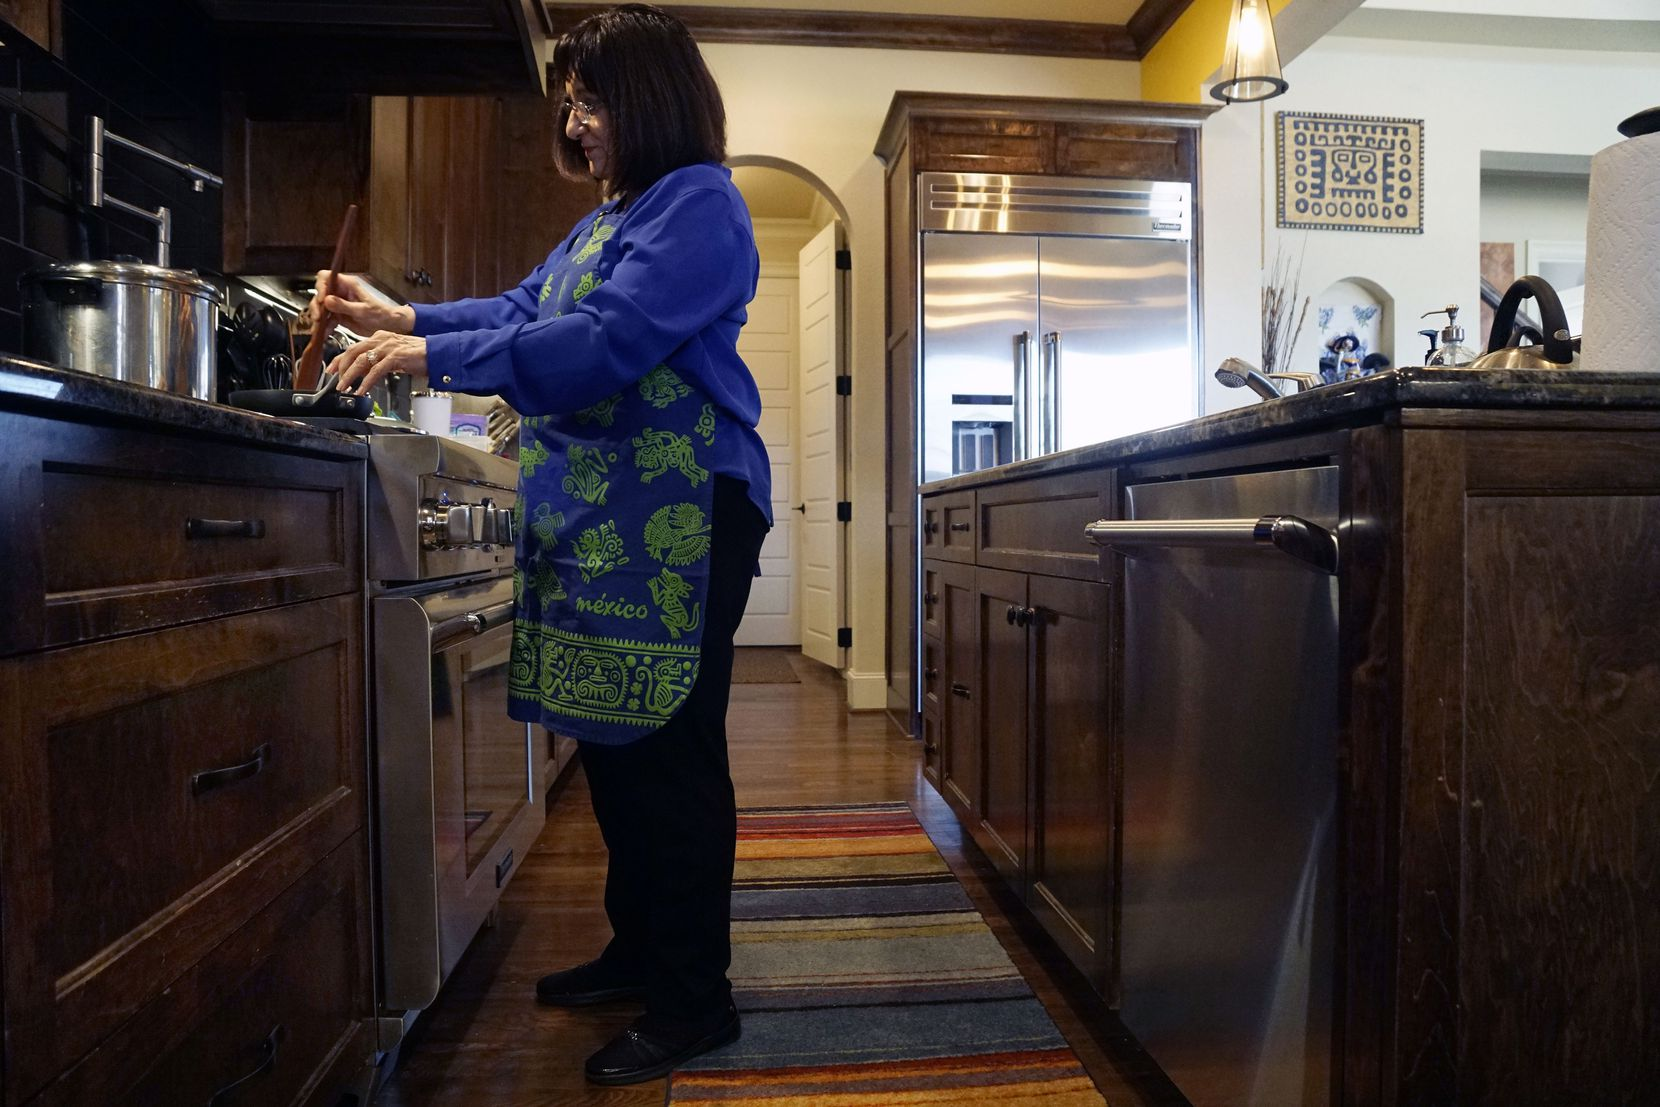 Lower than normal counters in the kitchen are among several features in Eva Bonilla's age proof home in Fort Worth, Texas on Monday January 21, 2019.